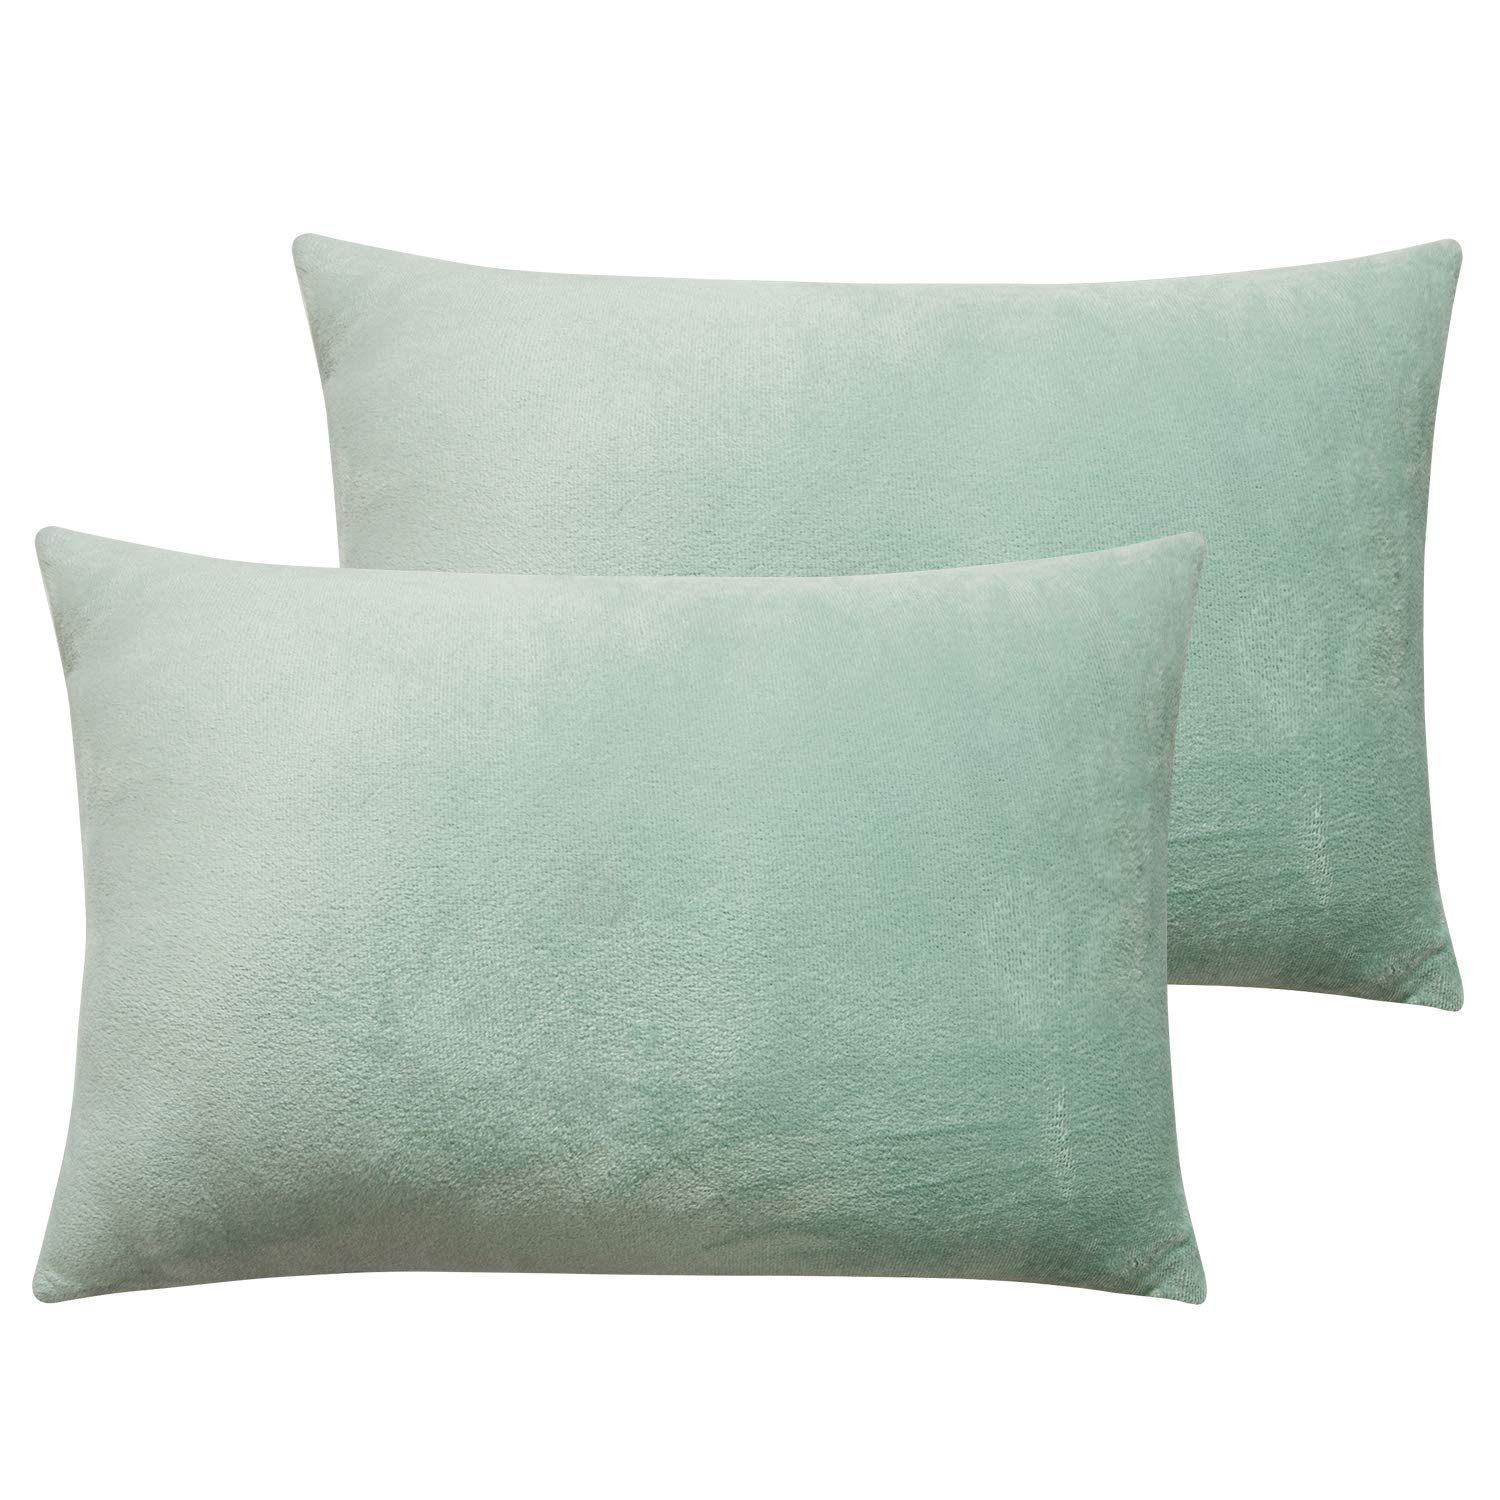 NTBAY Zippered Velvet Toddler Pillowcases, 2 Pack Super Soft and Cozy Luxury Travel Solid Color Pillow Covers, 13 x 18 Inches, Cyan